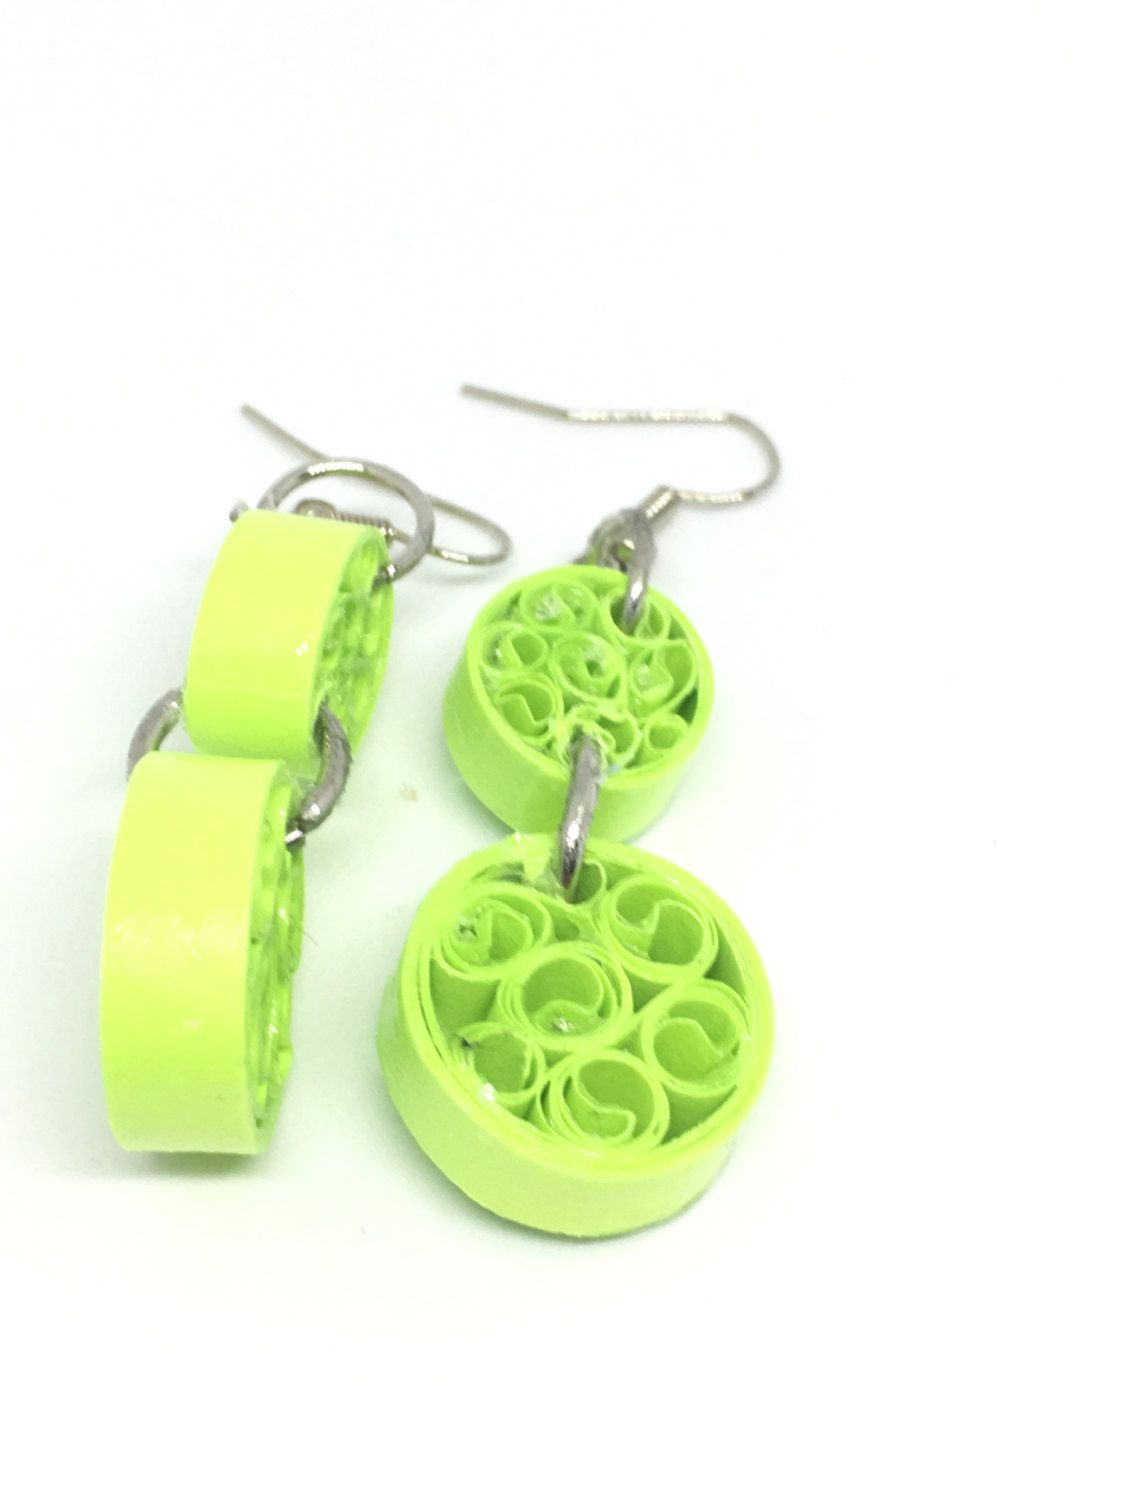 Dangle earrings paper quilled earrings first anniversary gift